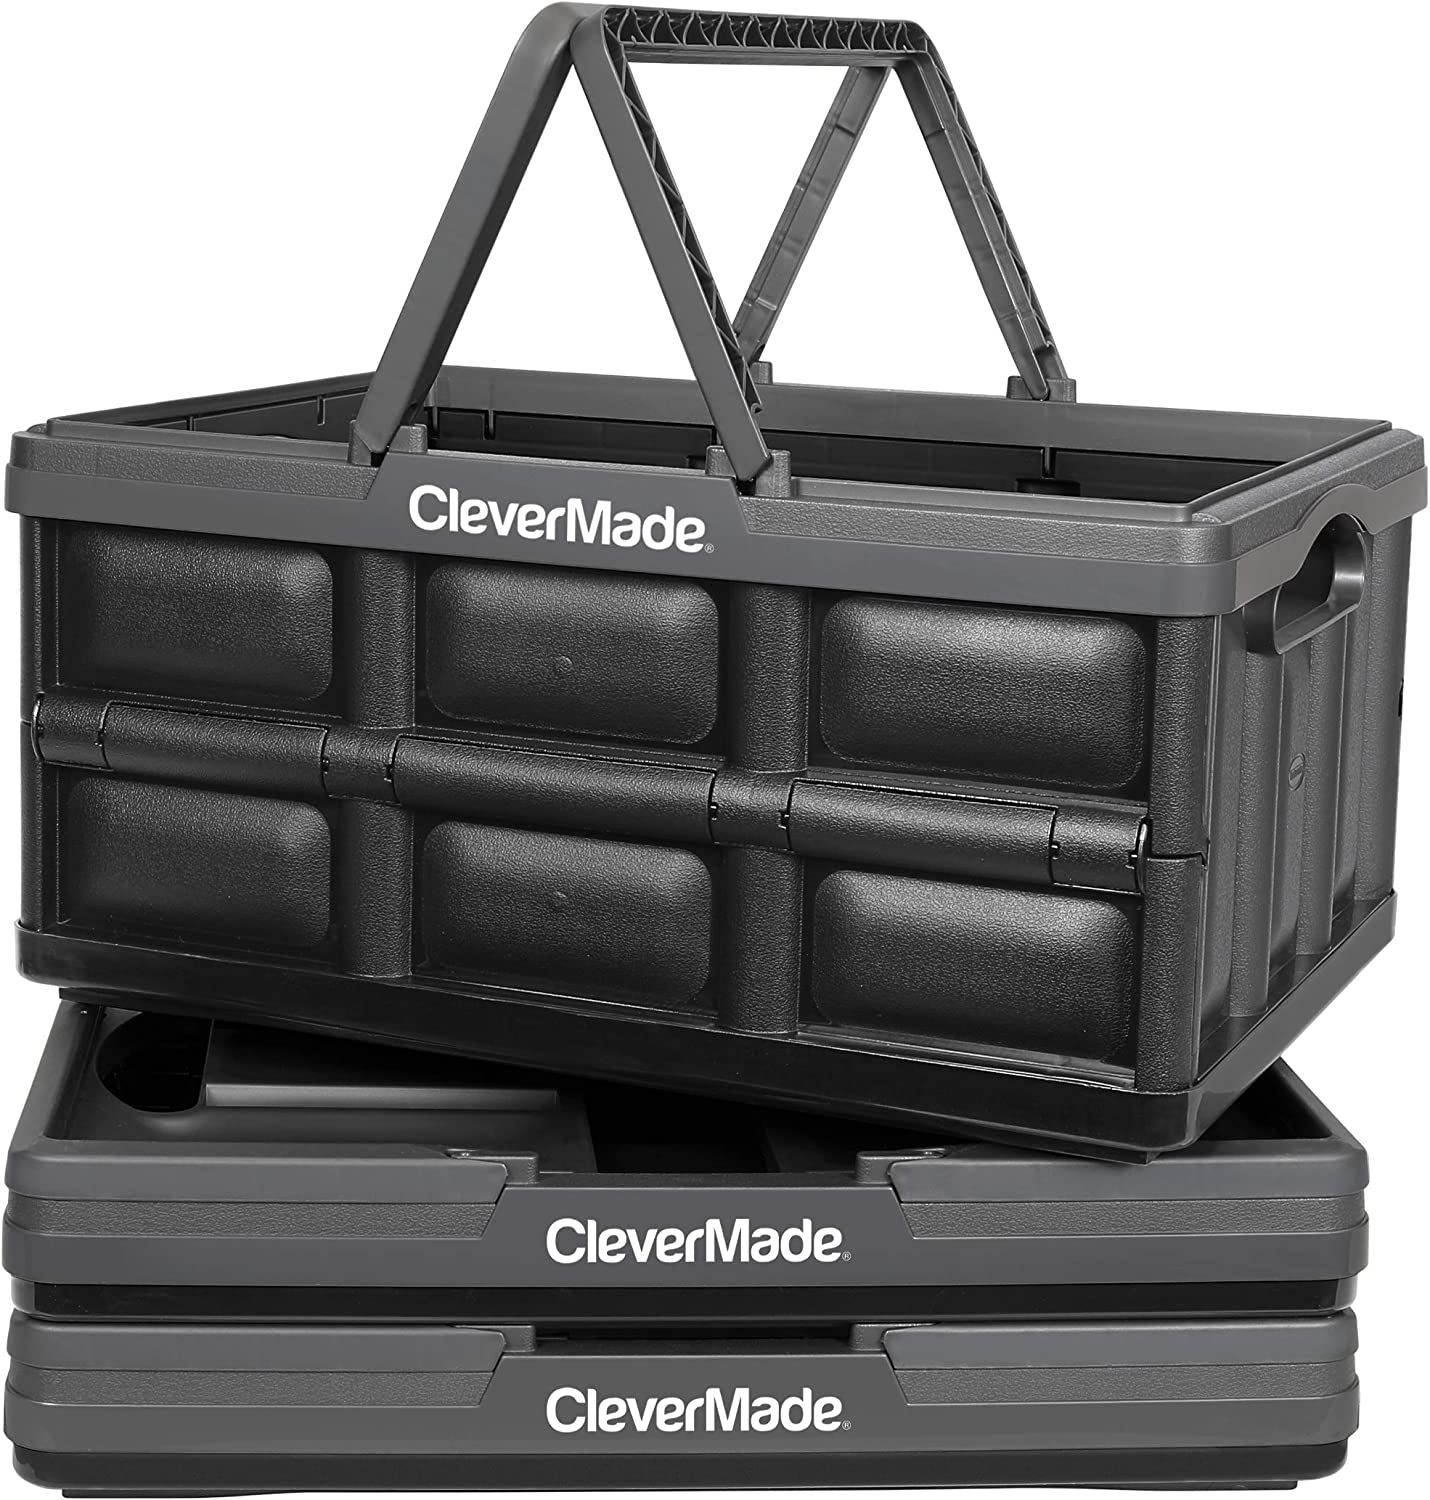 CleverMade Collapsible Plastic Storage Bins with Handles - Multi-Use Stackable Folding Crates for Home and Garage Organization - 32L CleverCrates - Pack of 3, Charcoal